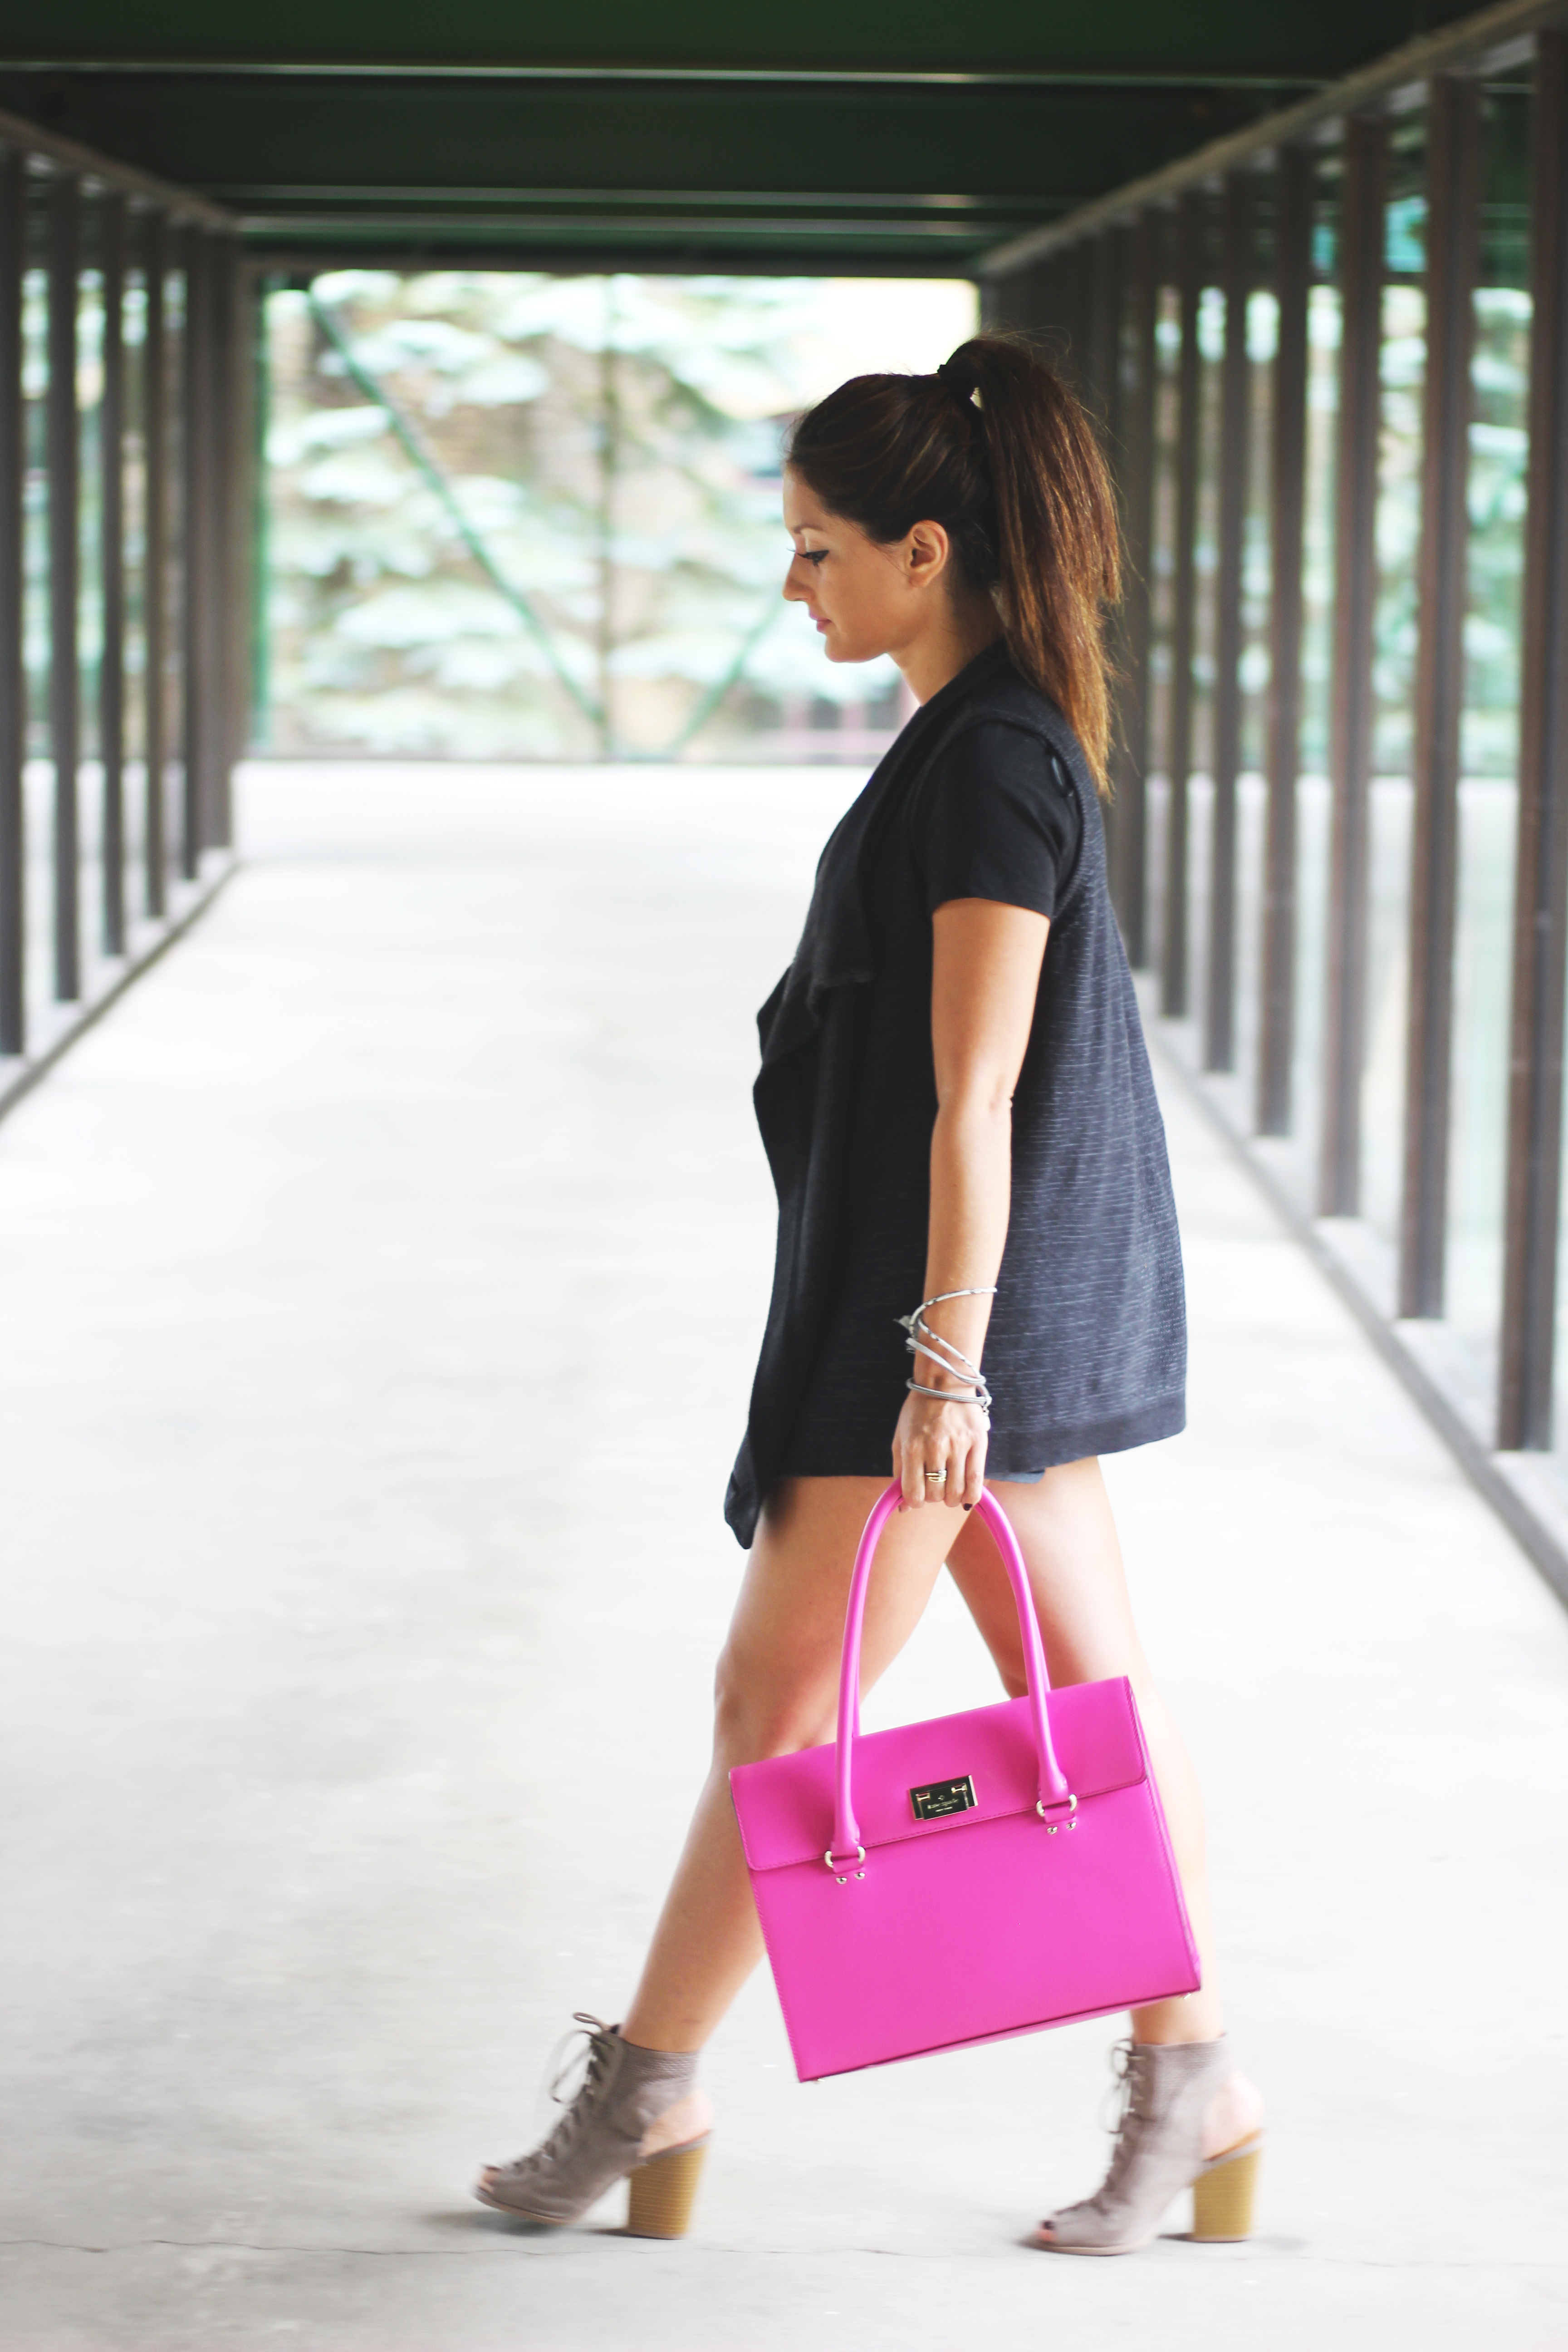 Black summer outfit with pink purse